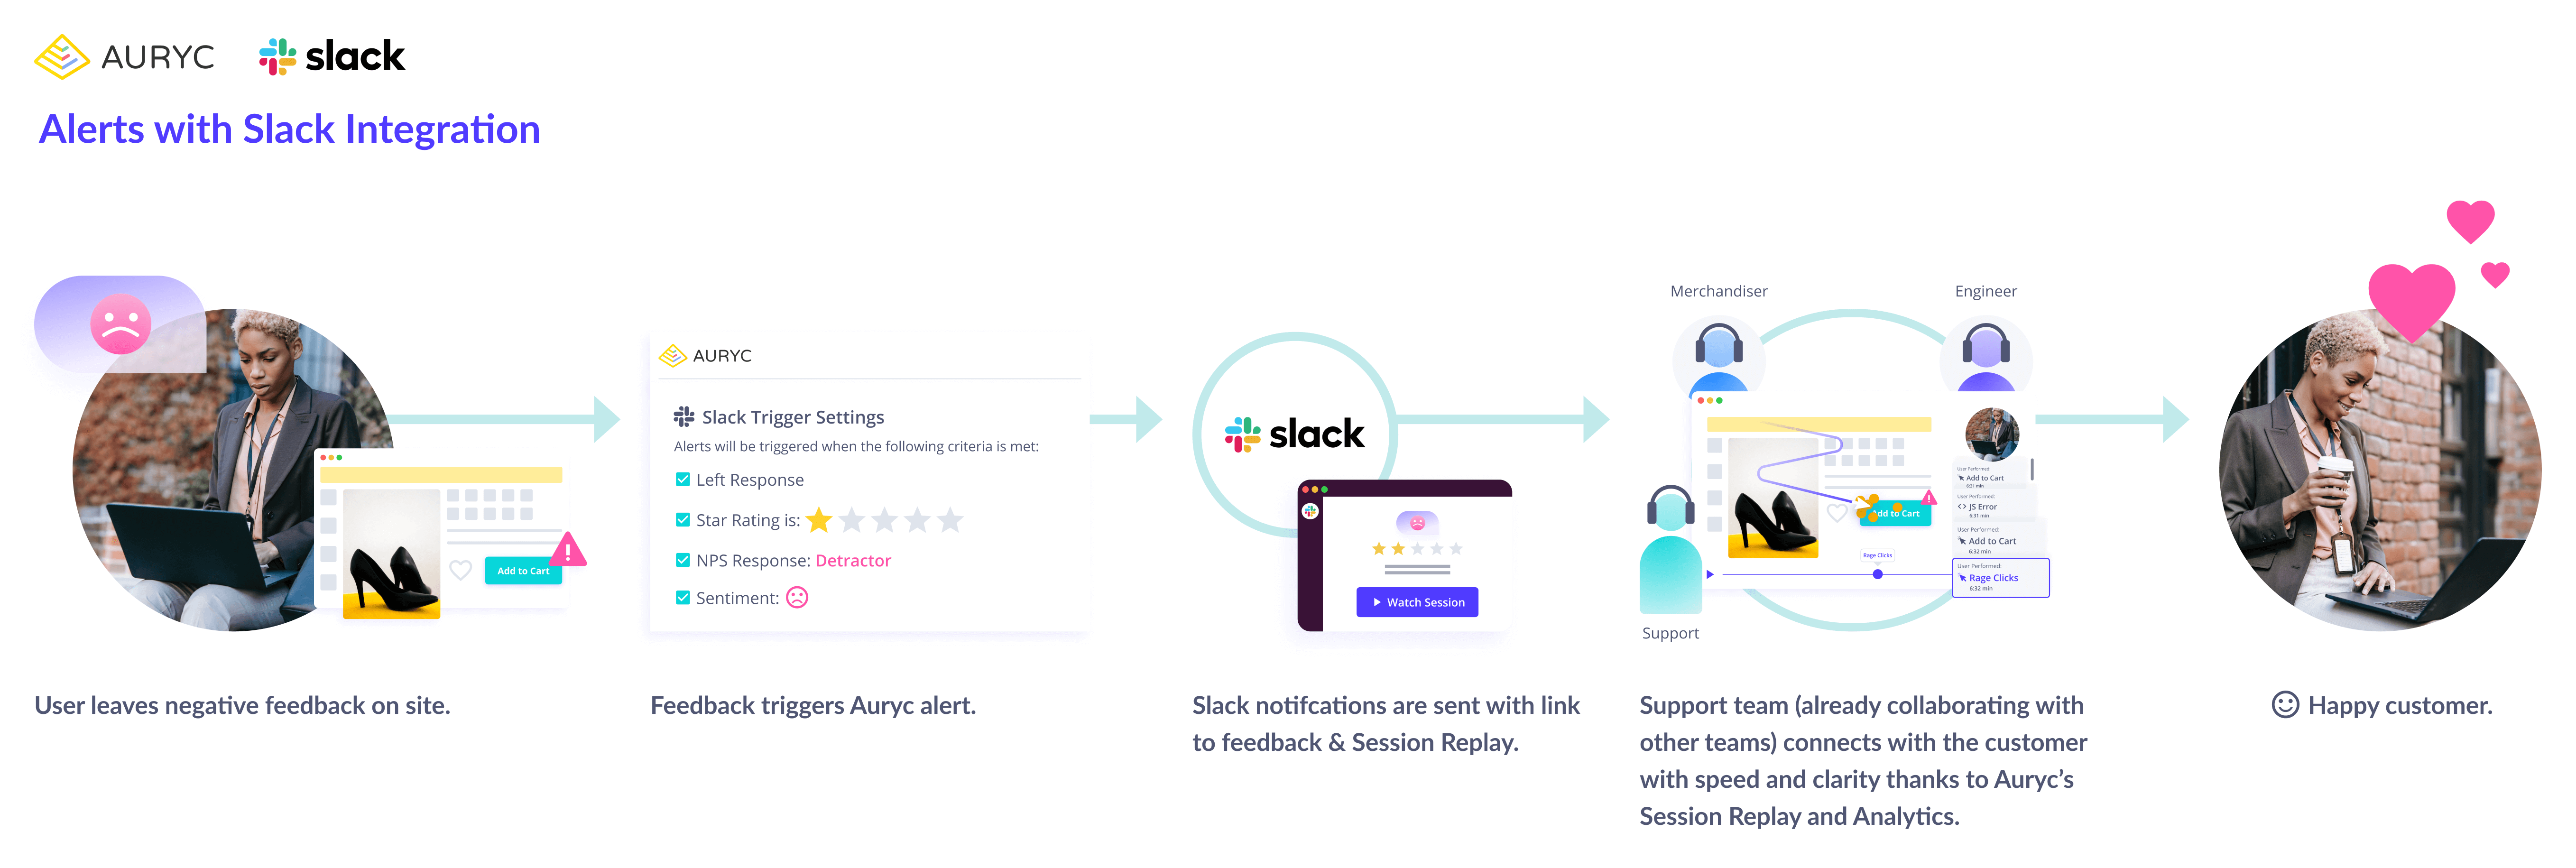 Auryc-integrates-with-slack -with-instant-customer-experience-alerts